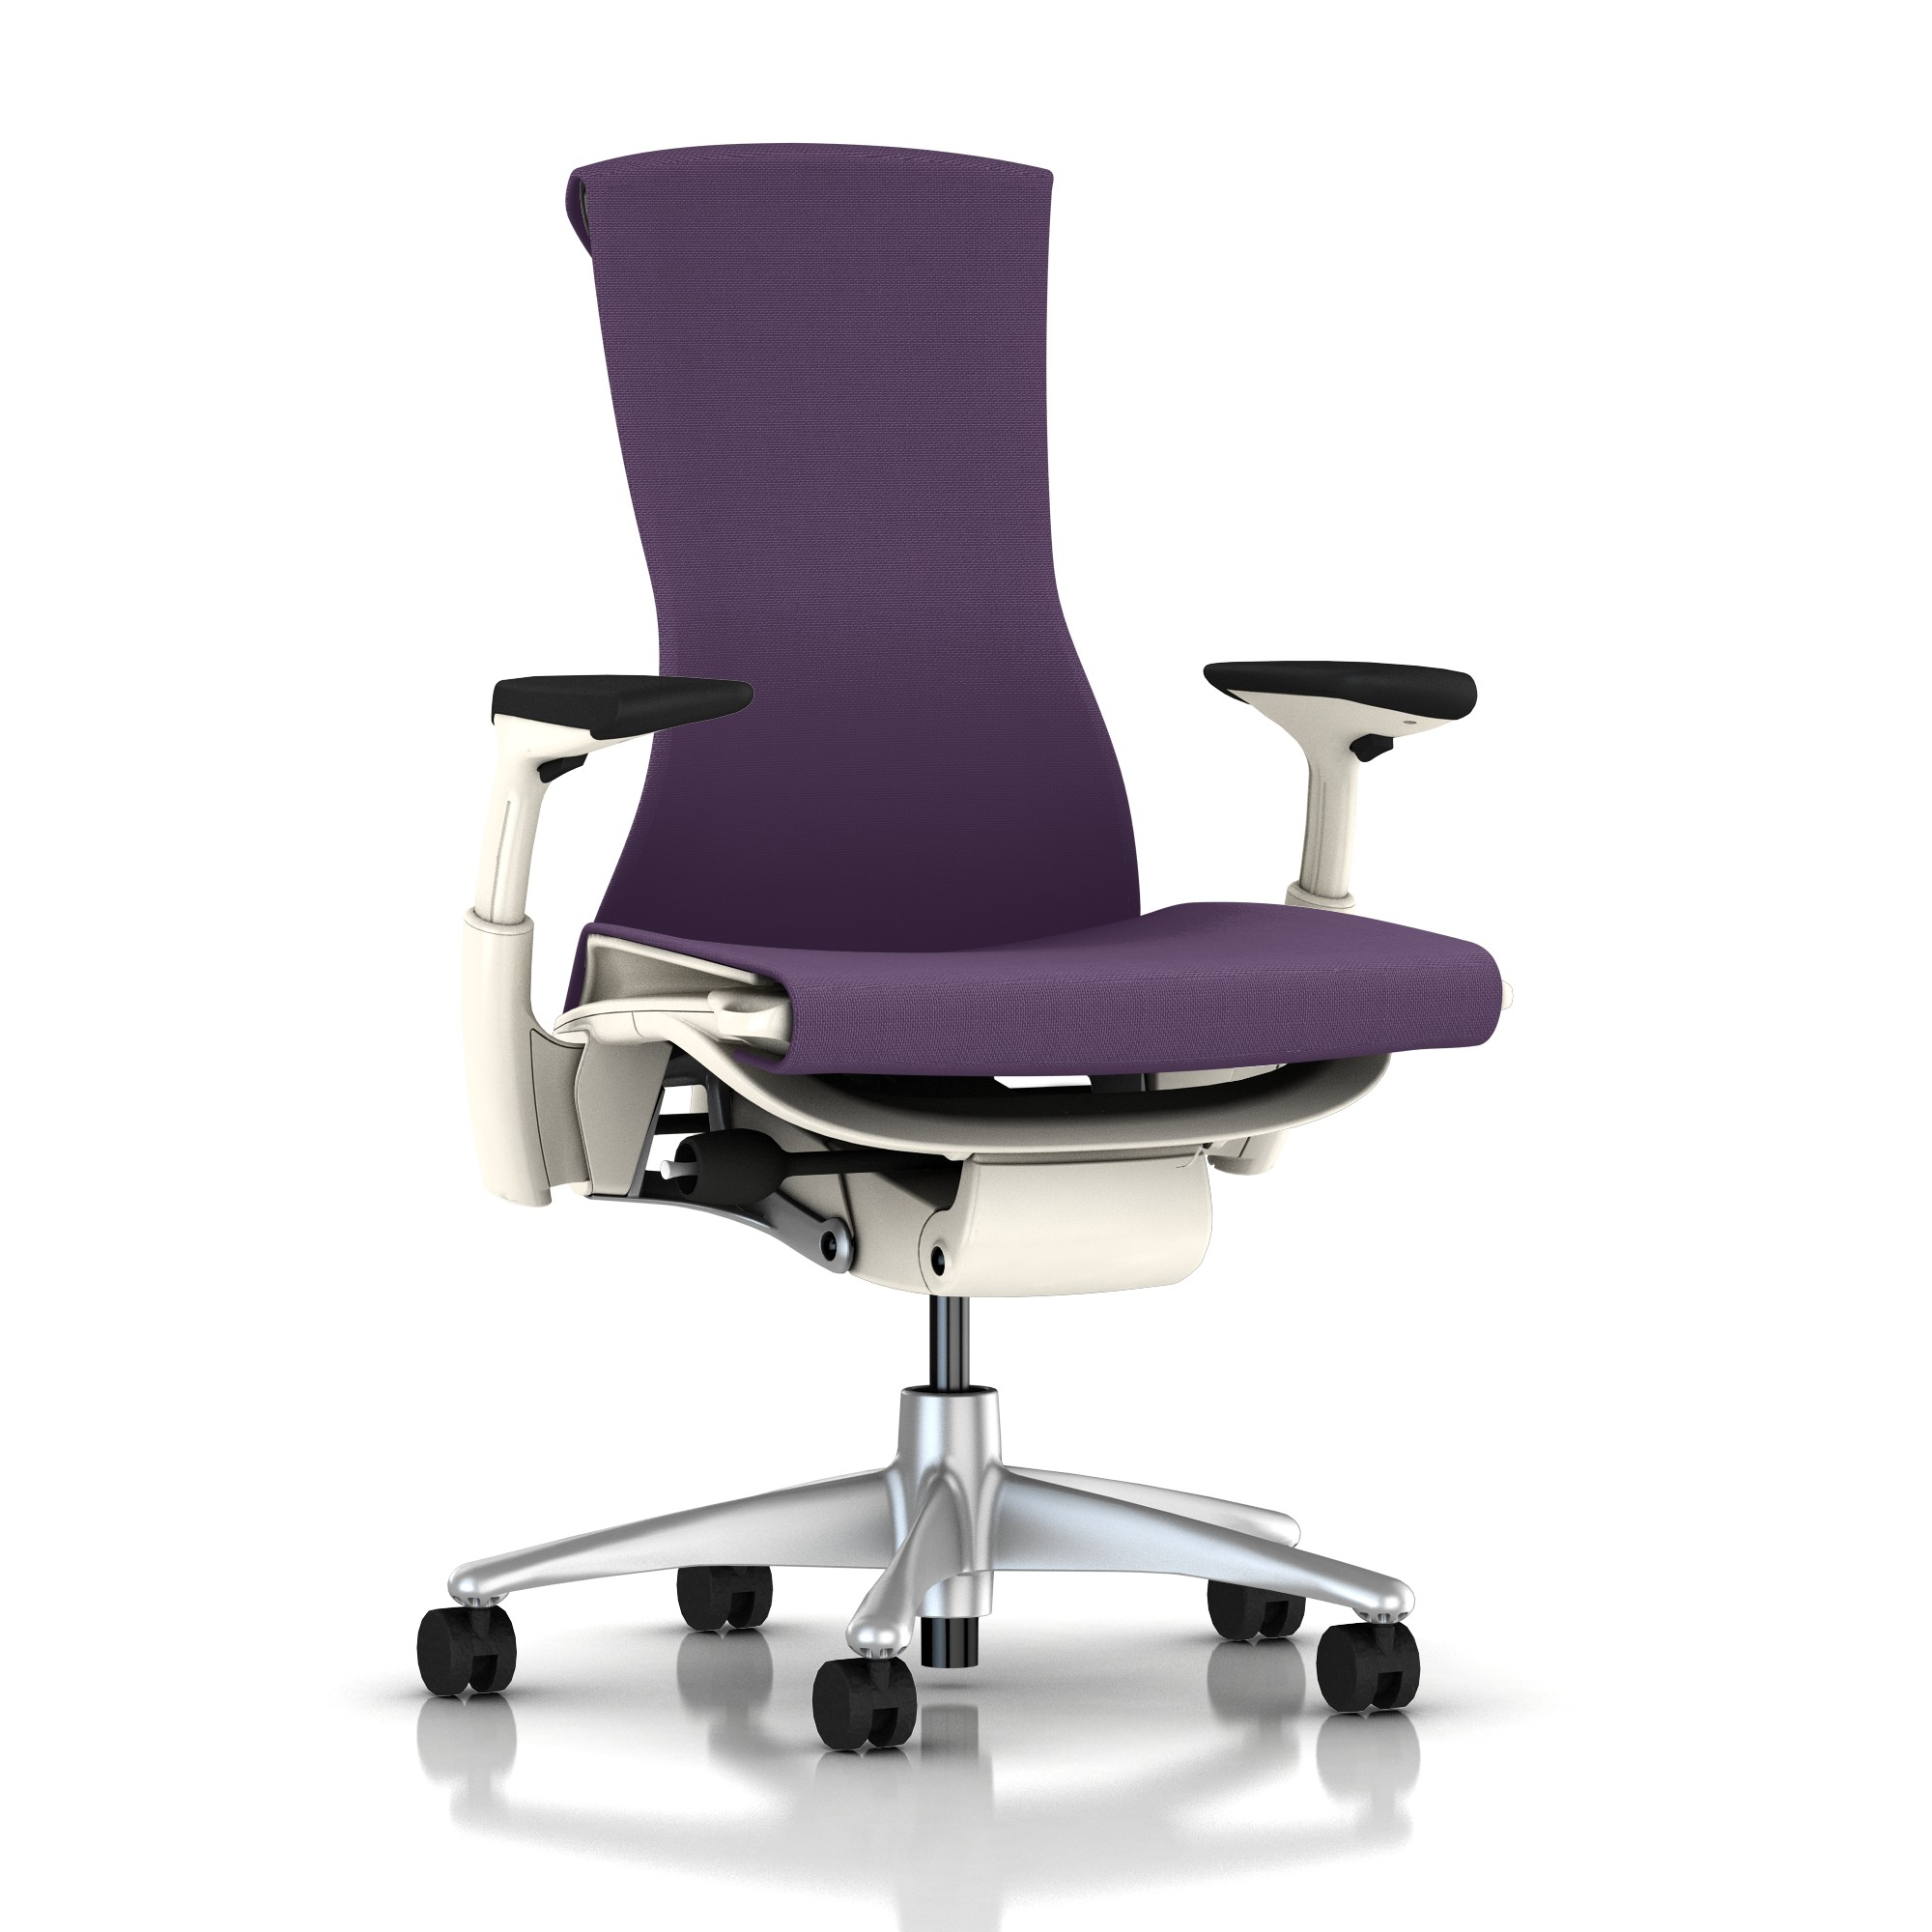 NEW - Embody Chair (Acai Berry Medley)